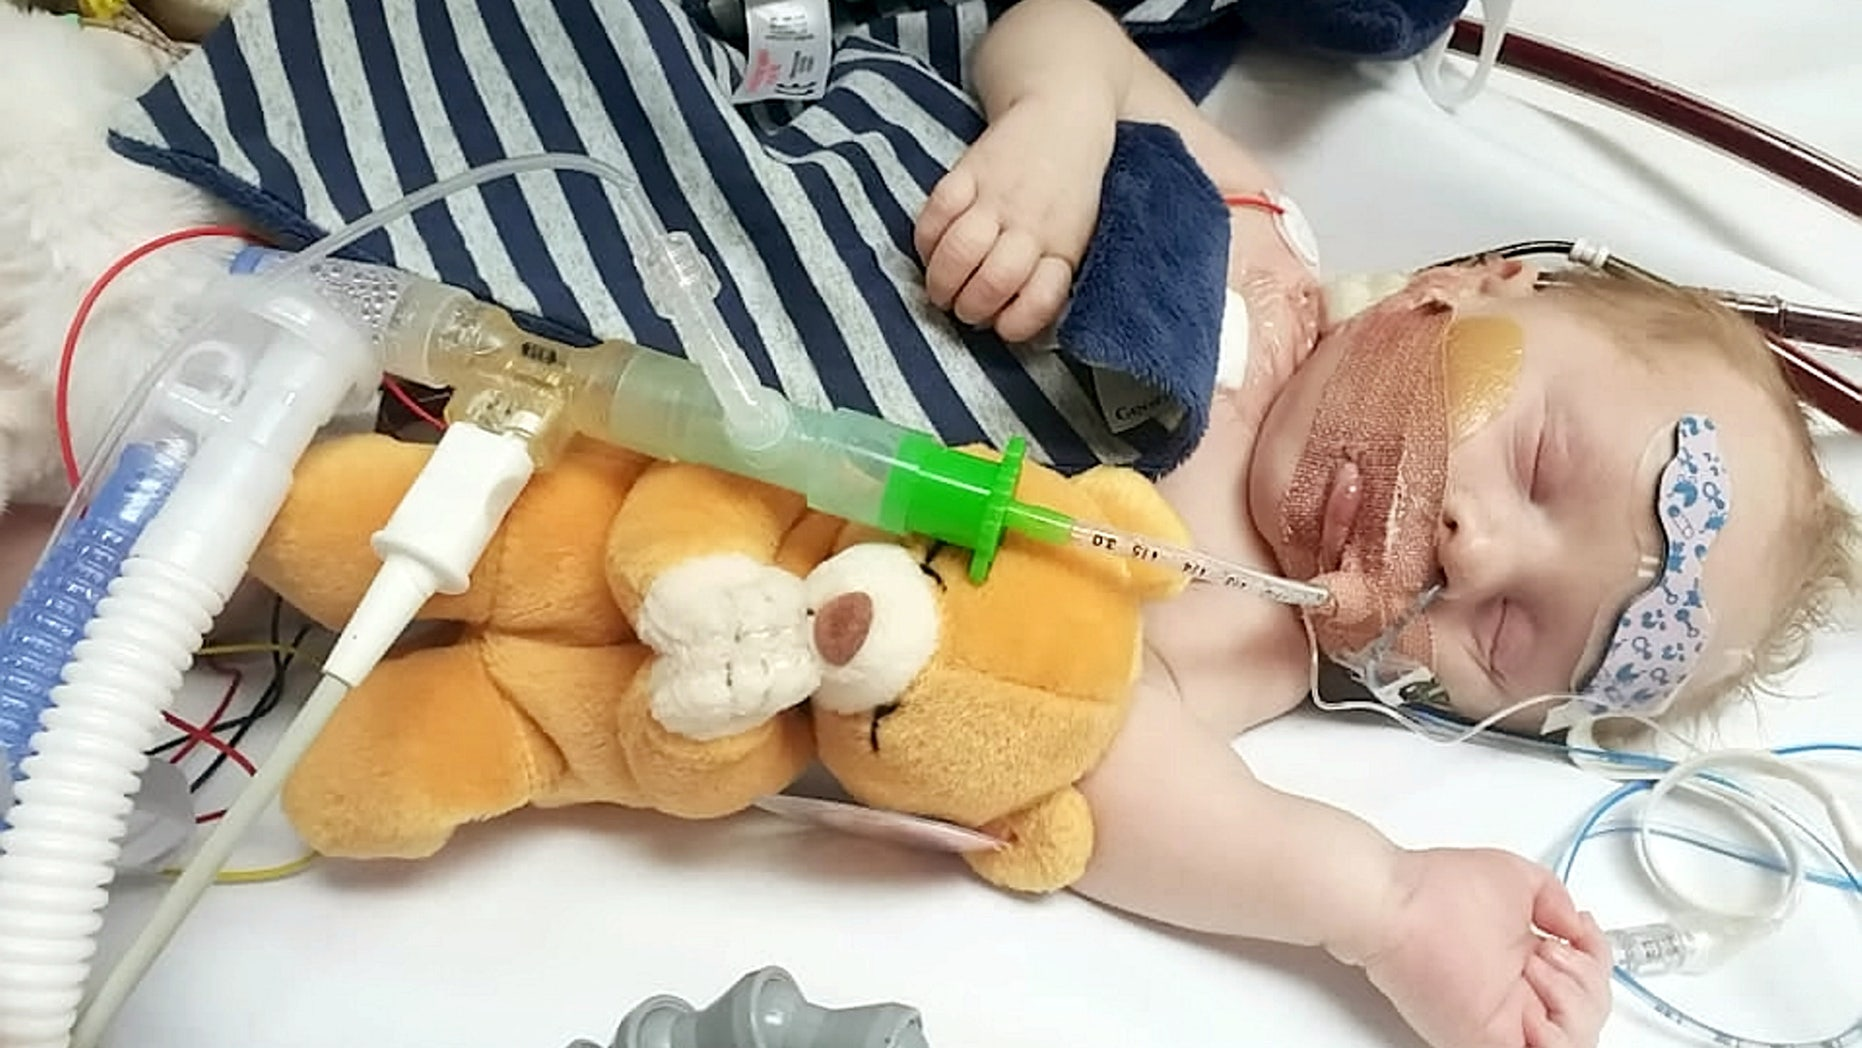 Carter Cookson suffered cardiac arrest three times within hours of his birth, and is need of a life-saving heart transplant.